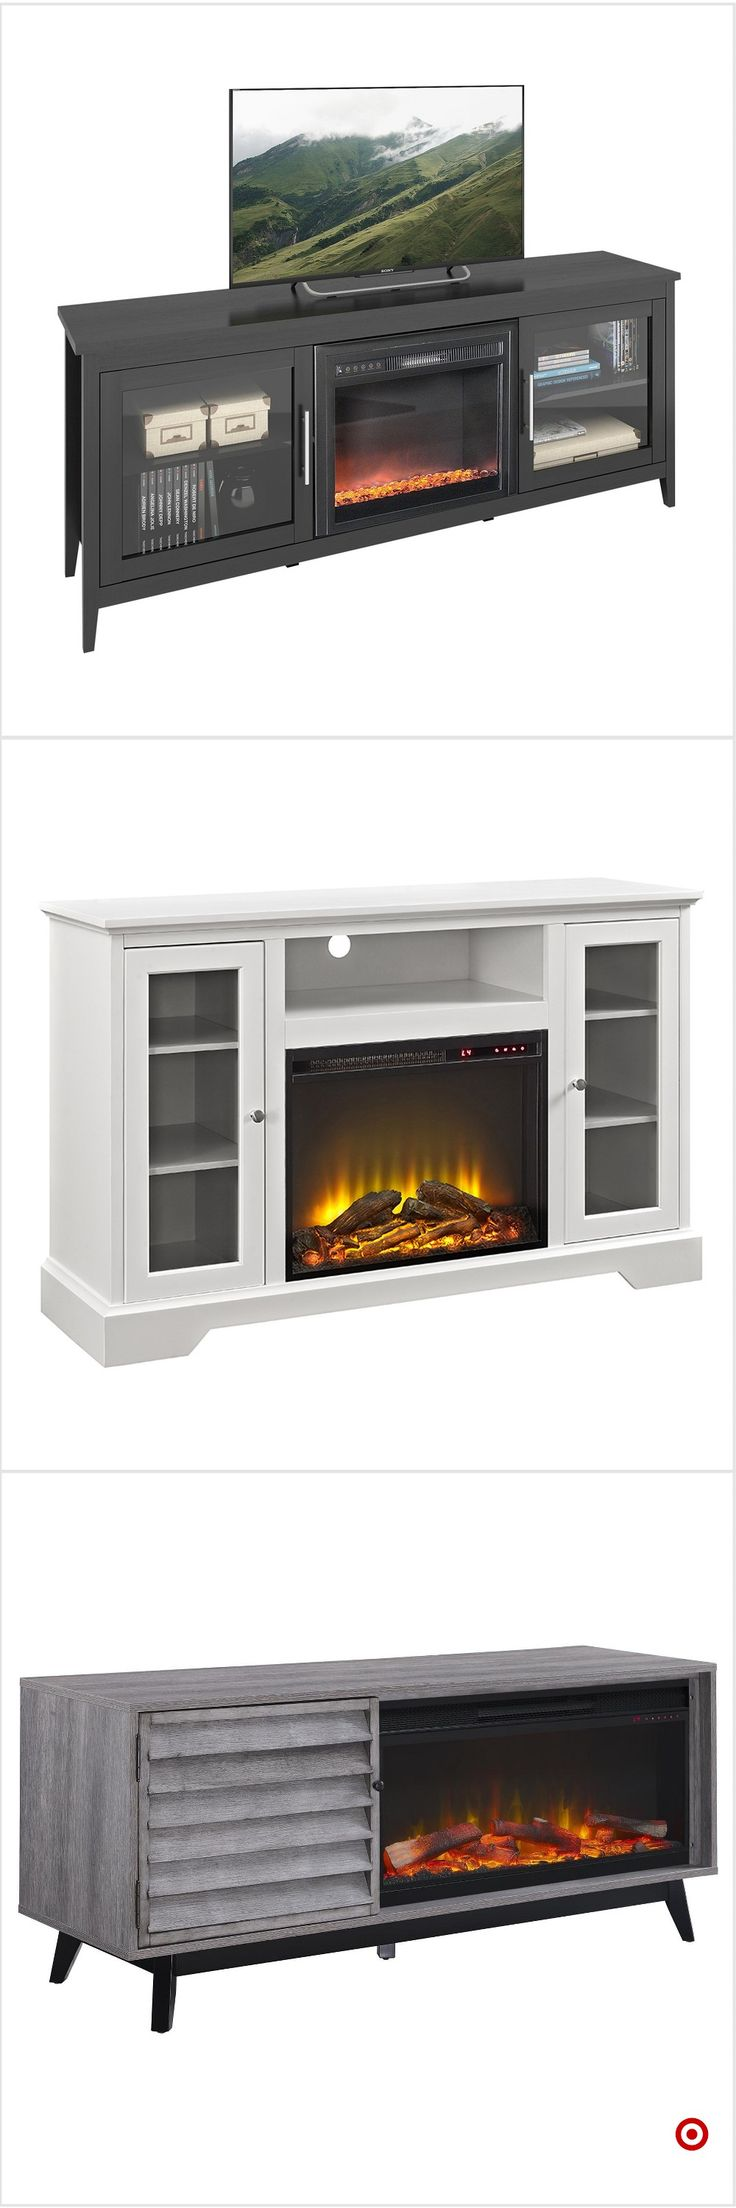 electric fireplace nebraska furniture mart on shop target for tv media stand fireplace you will love at great low prices free shipping on orders of 35 or home nebraska furniture mart fireplace tv stand pinterest